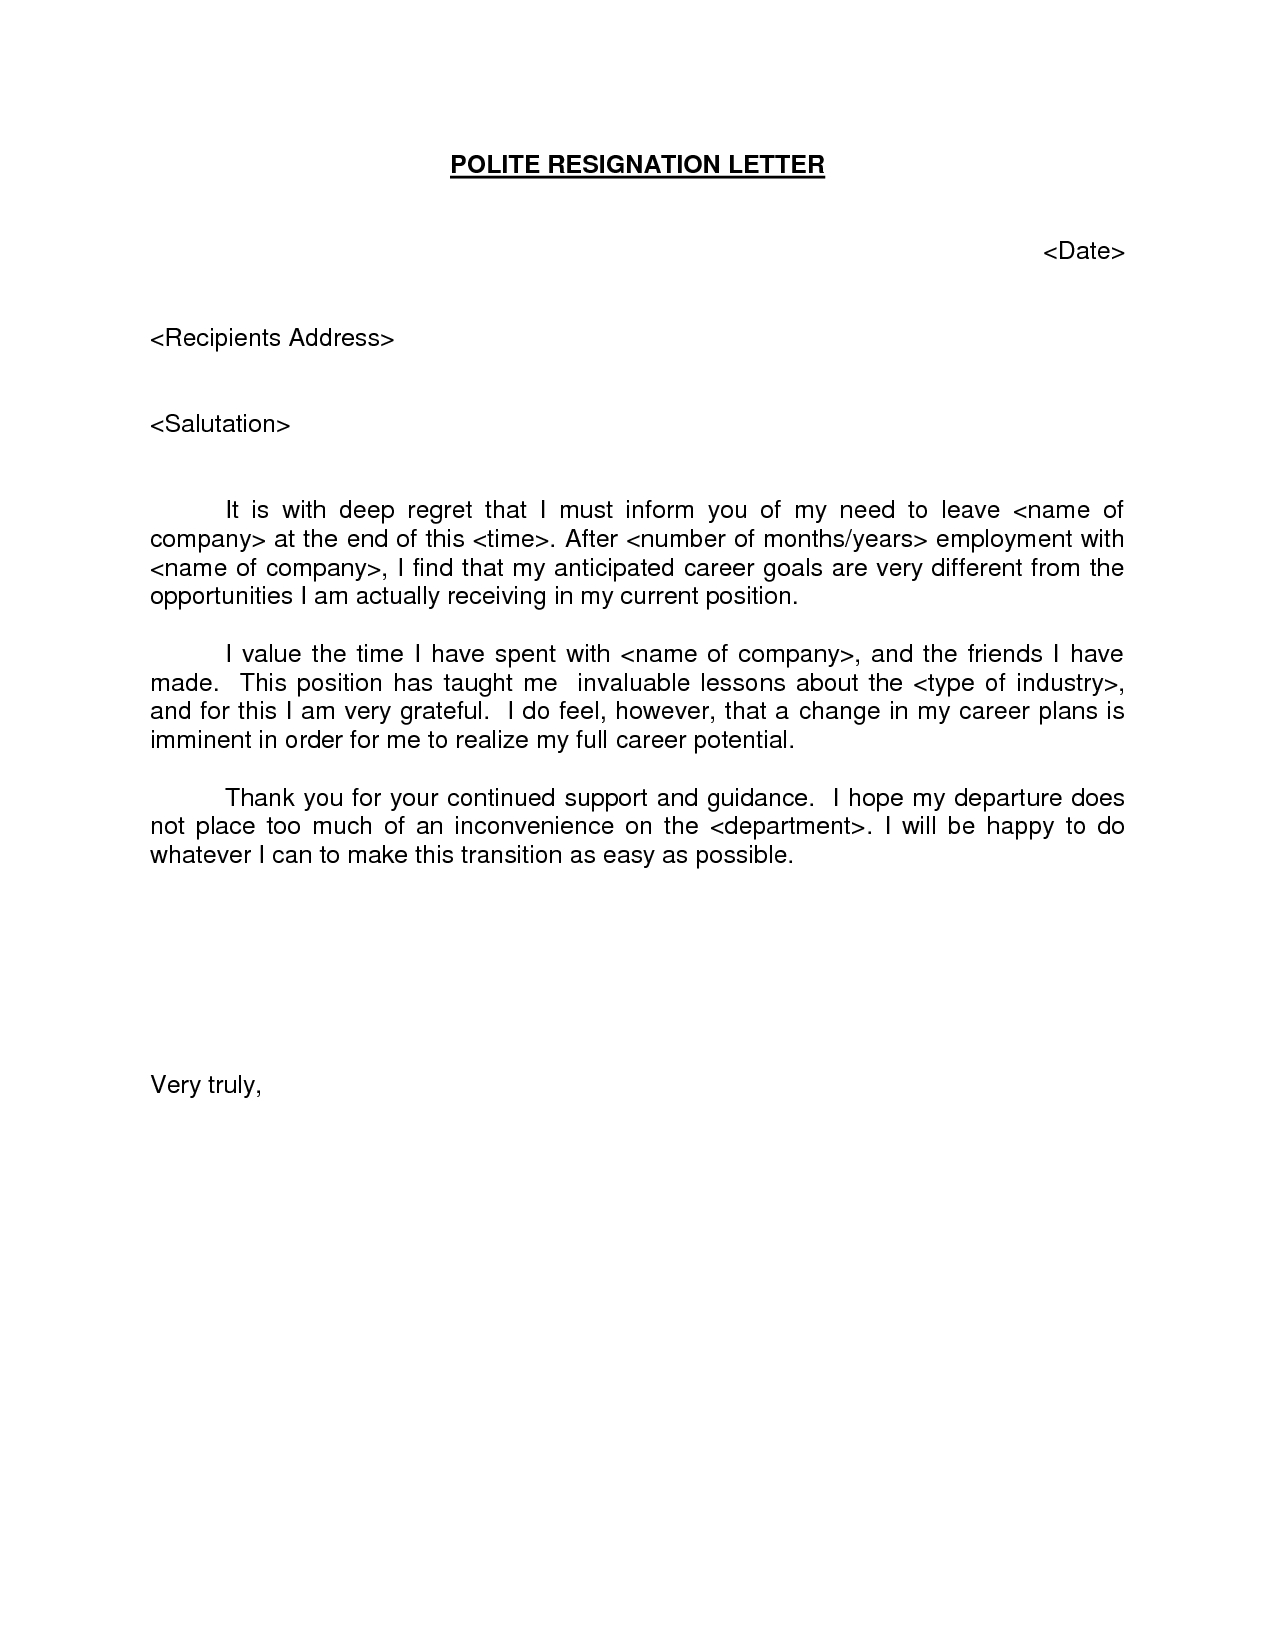 Appointment Reminder Letter Template - Polite Resignation Letter Bestdealformoneywriting A Letter